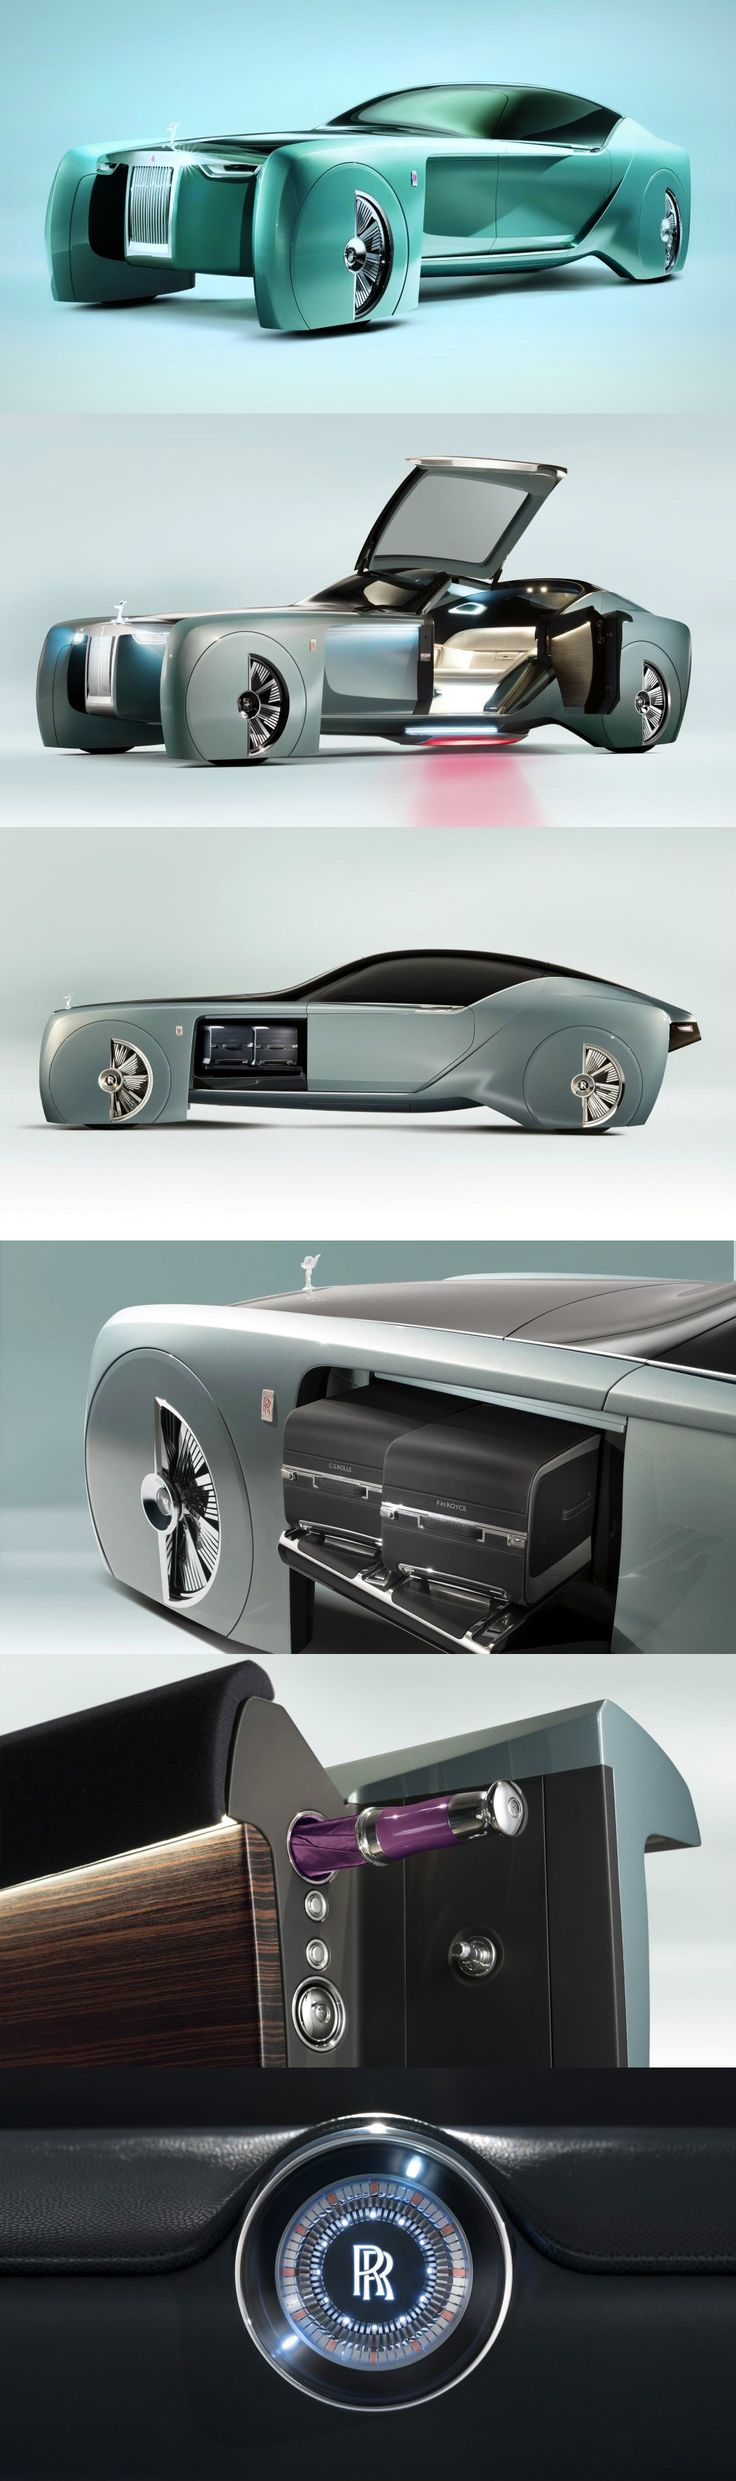 LUDICROUS LUXURIOUS | READ FULL STORY AT YANKO DESIGN